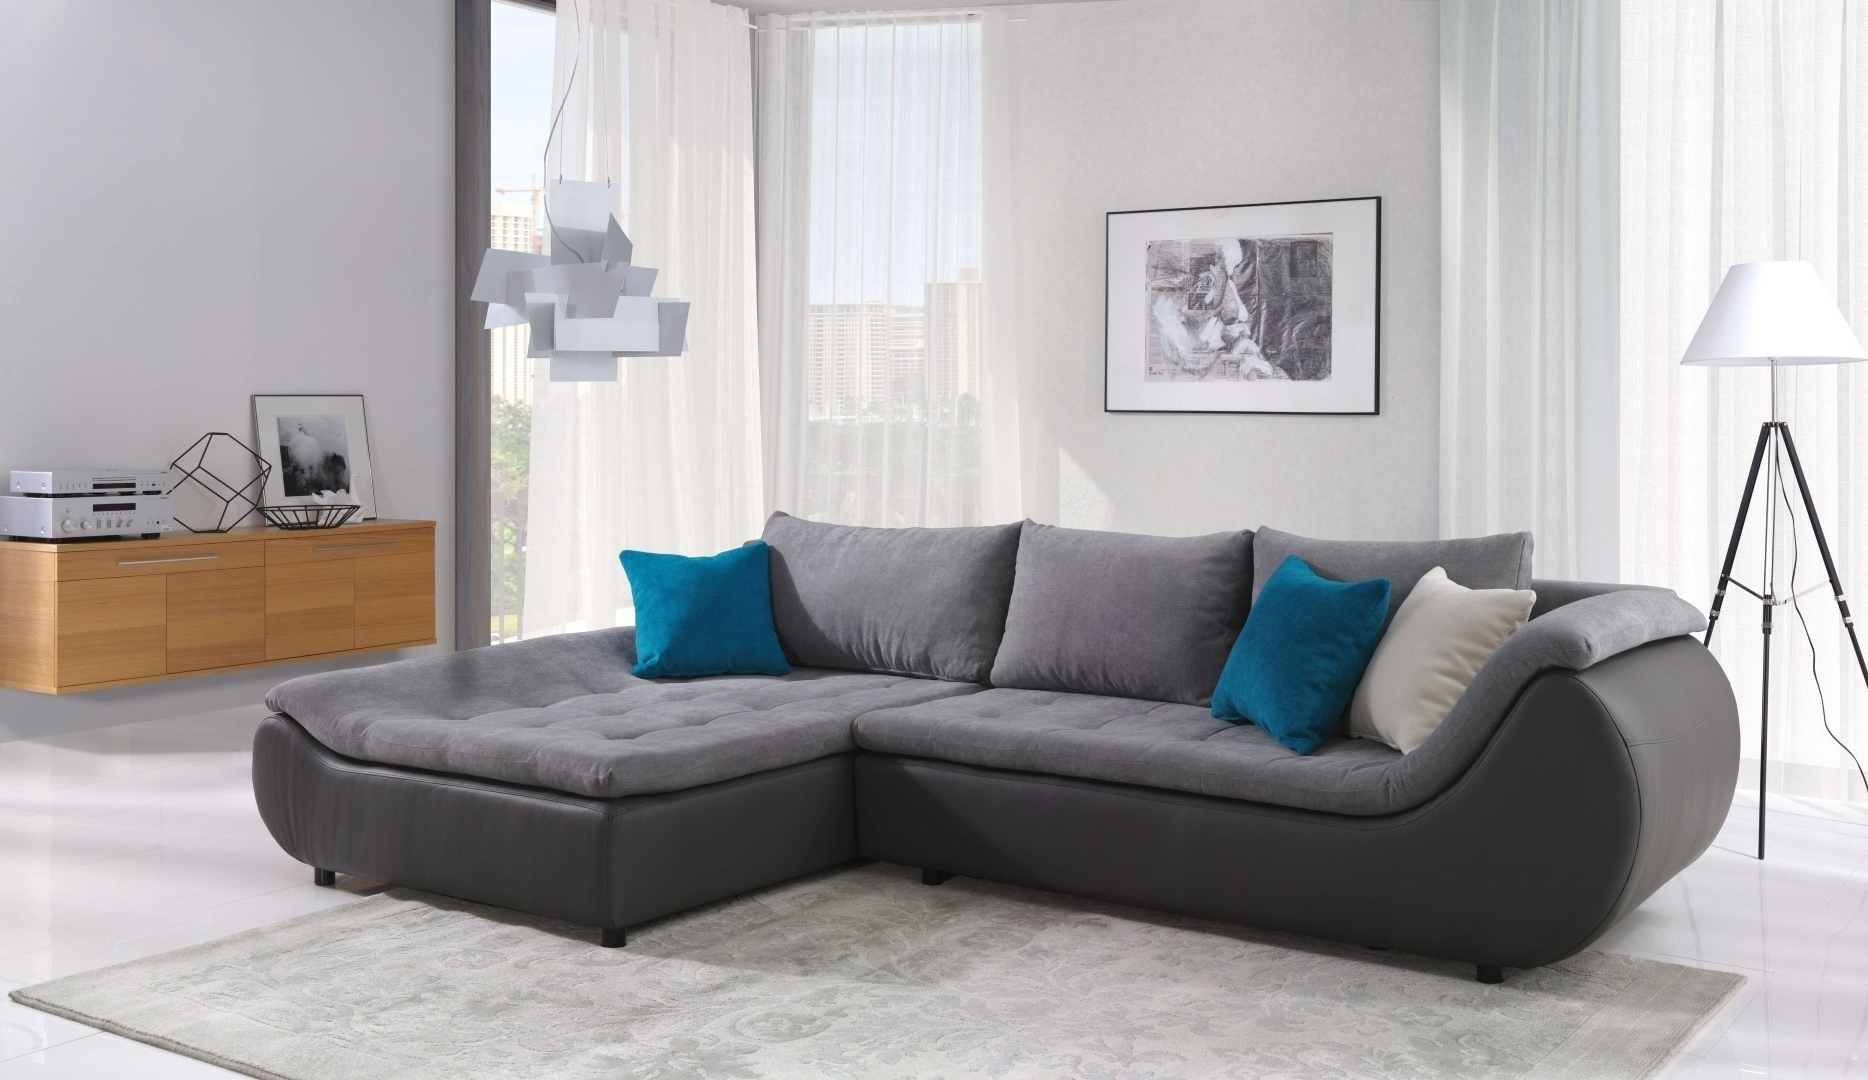 Most Popular Rochester Ny Sectional Sofas Throughout Collection Sectional Sofas Rochester Ny – Mediasupload (View 2 of 20)